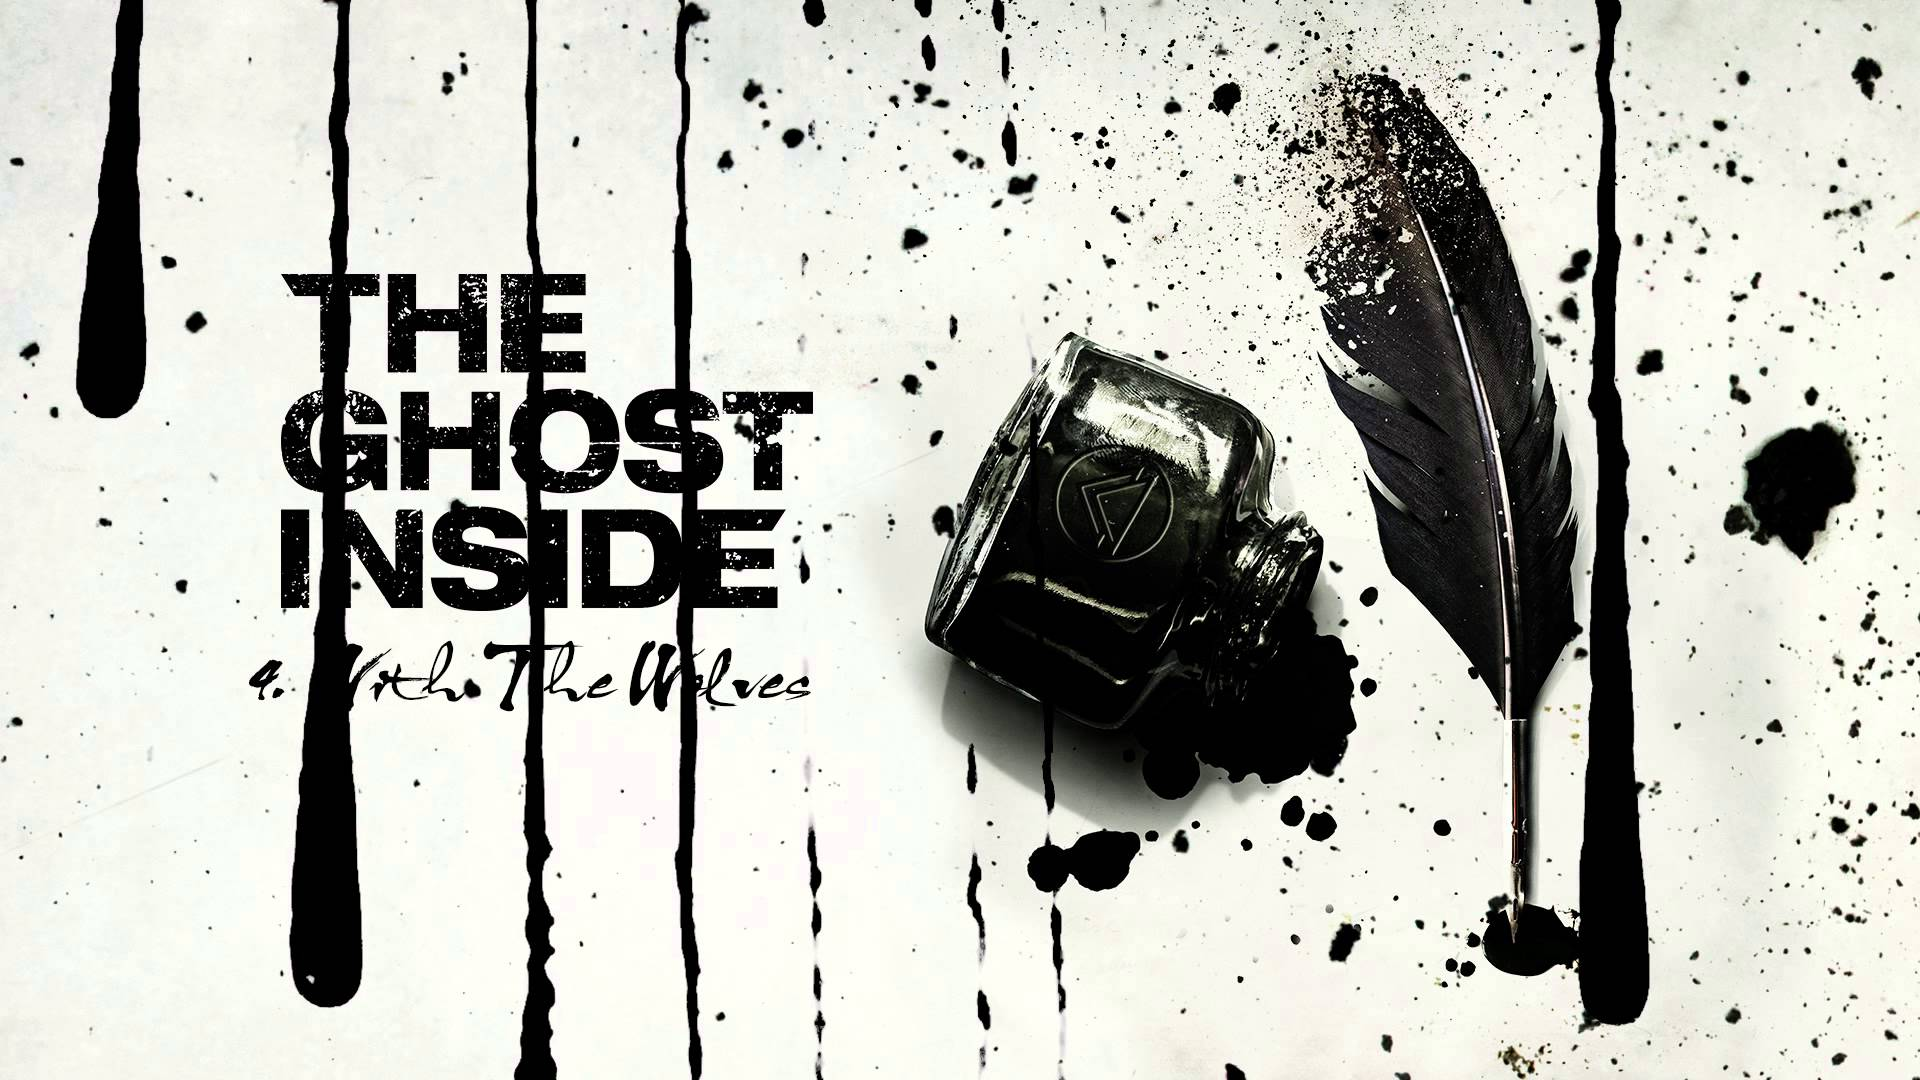 THE GHOST INSIDE WALLPAPERS FREE Wallpapers Background images 1920x1080